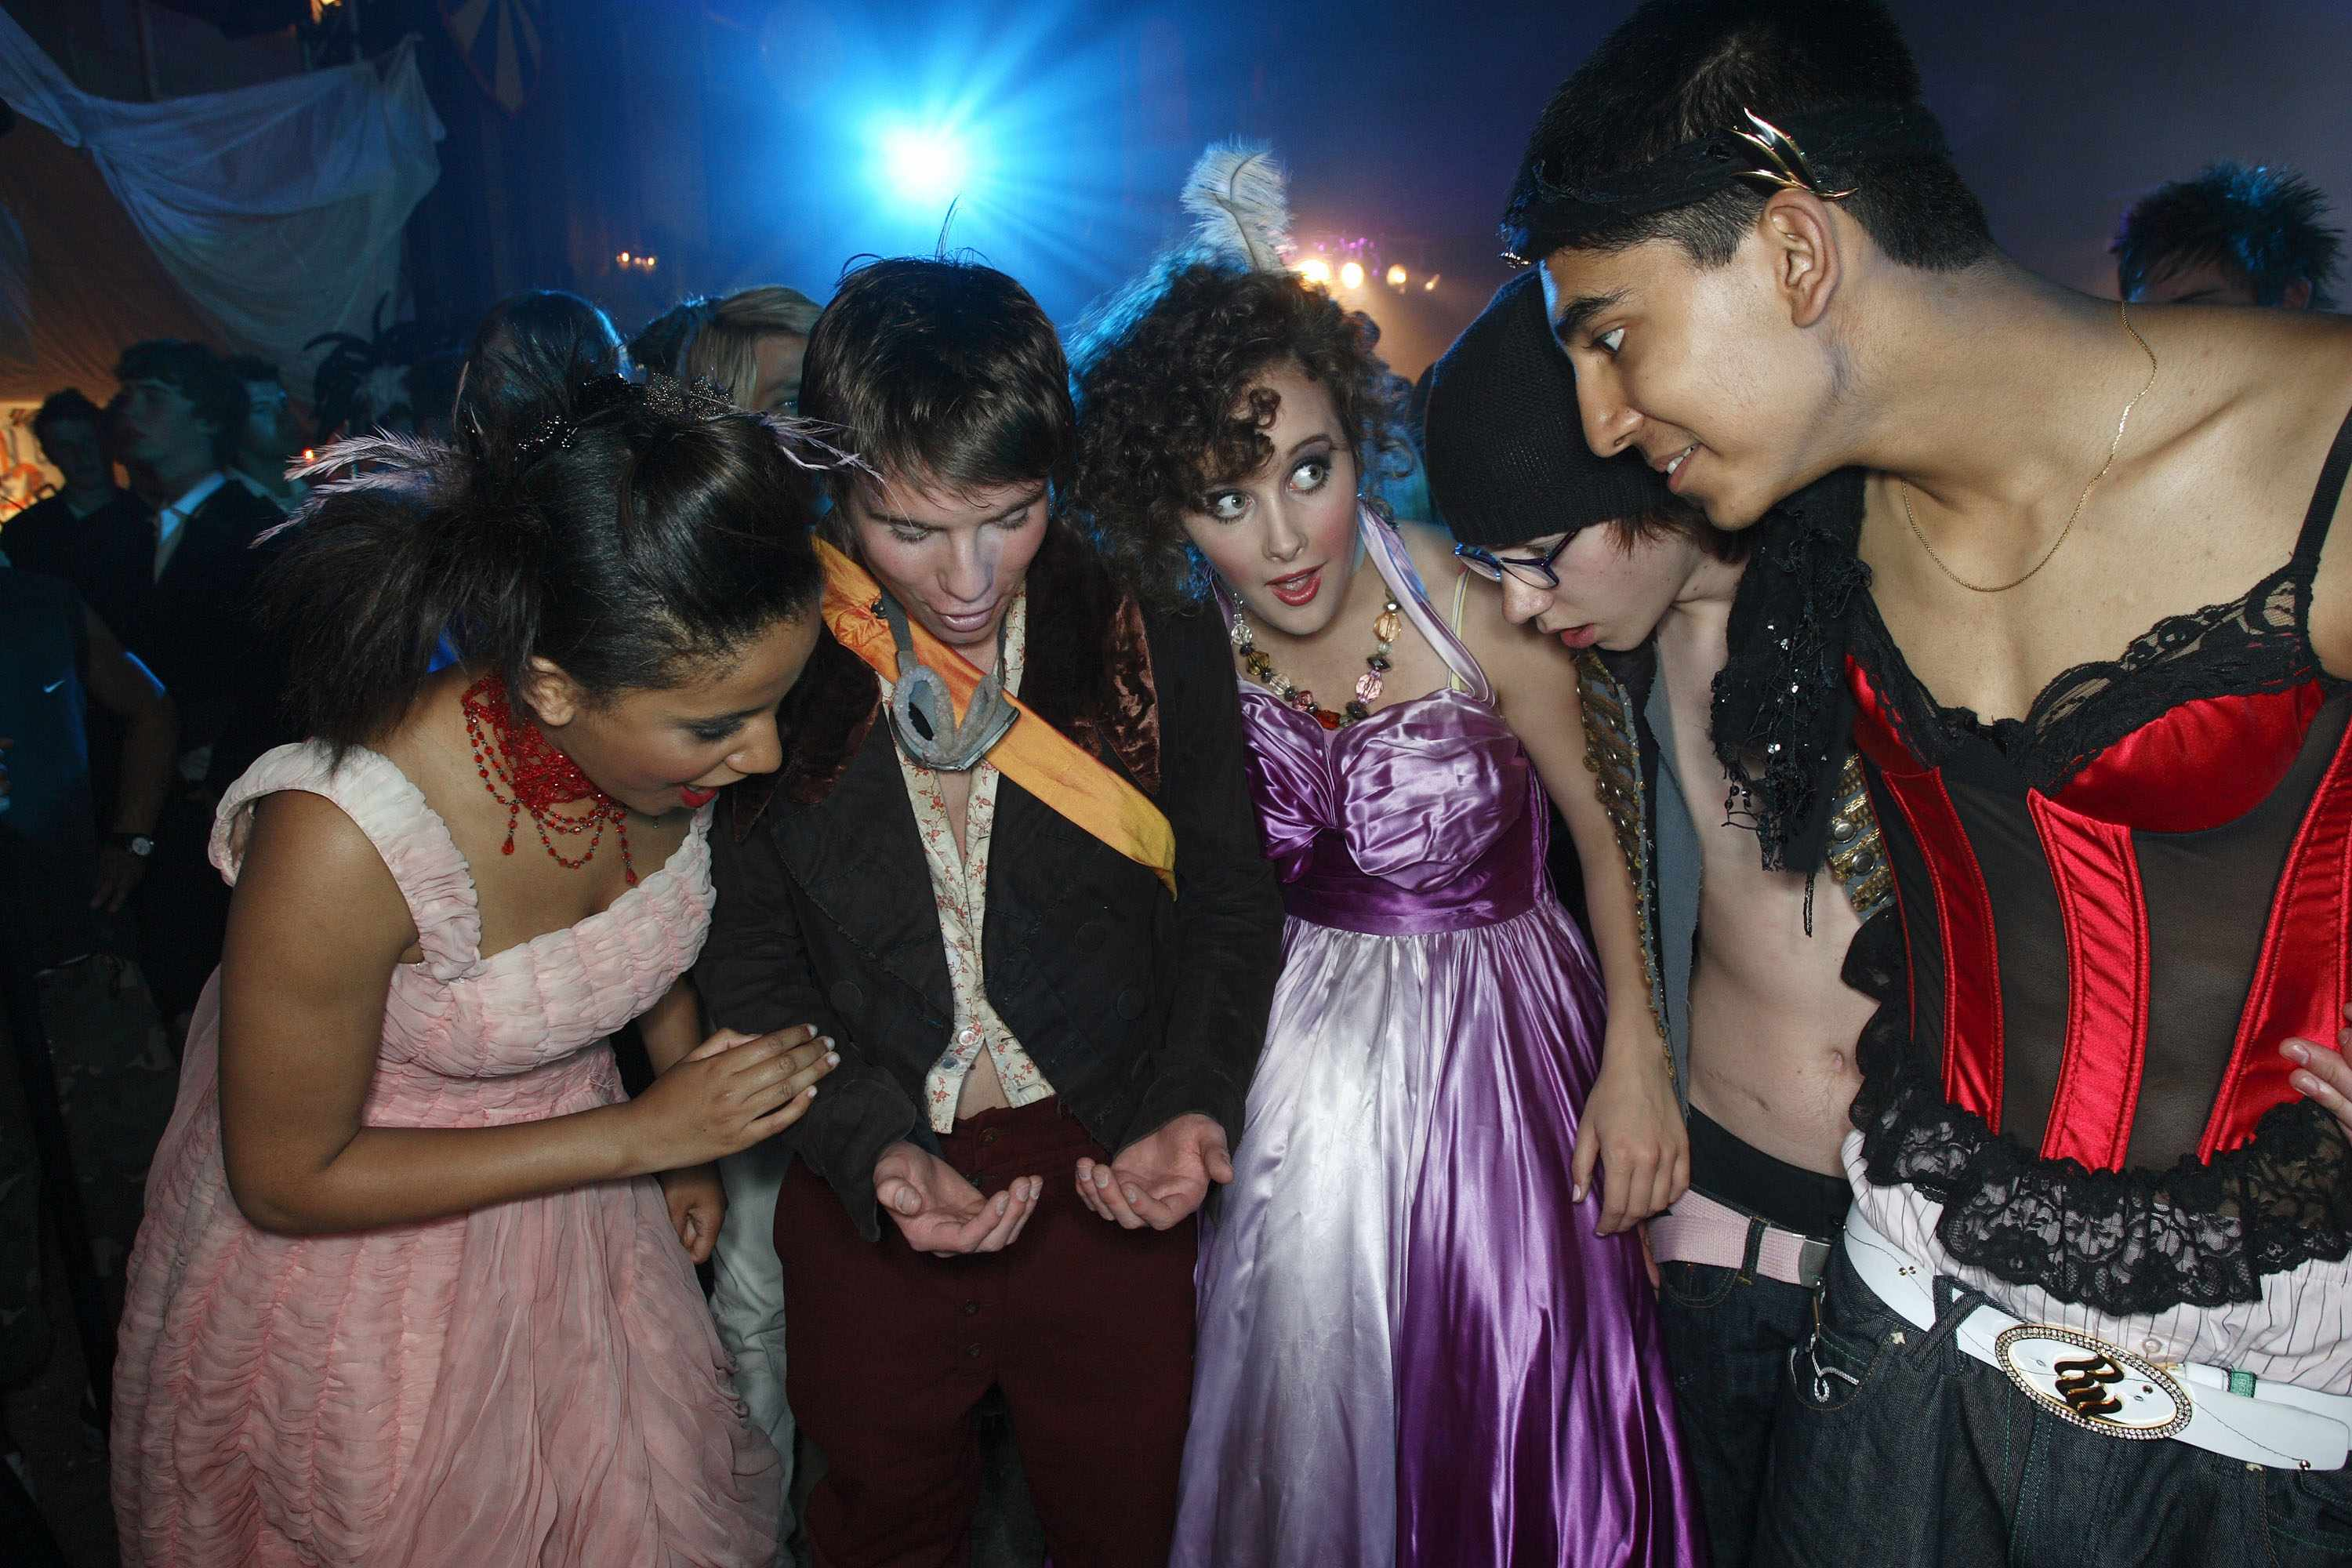 Cast of Skins Generation 1